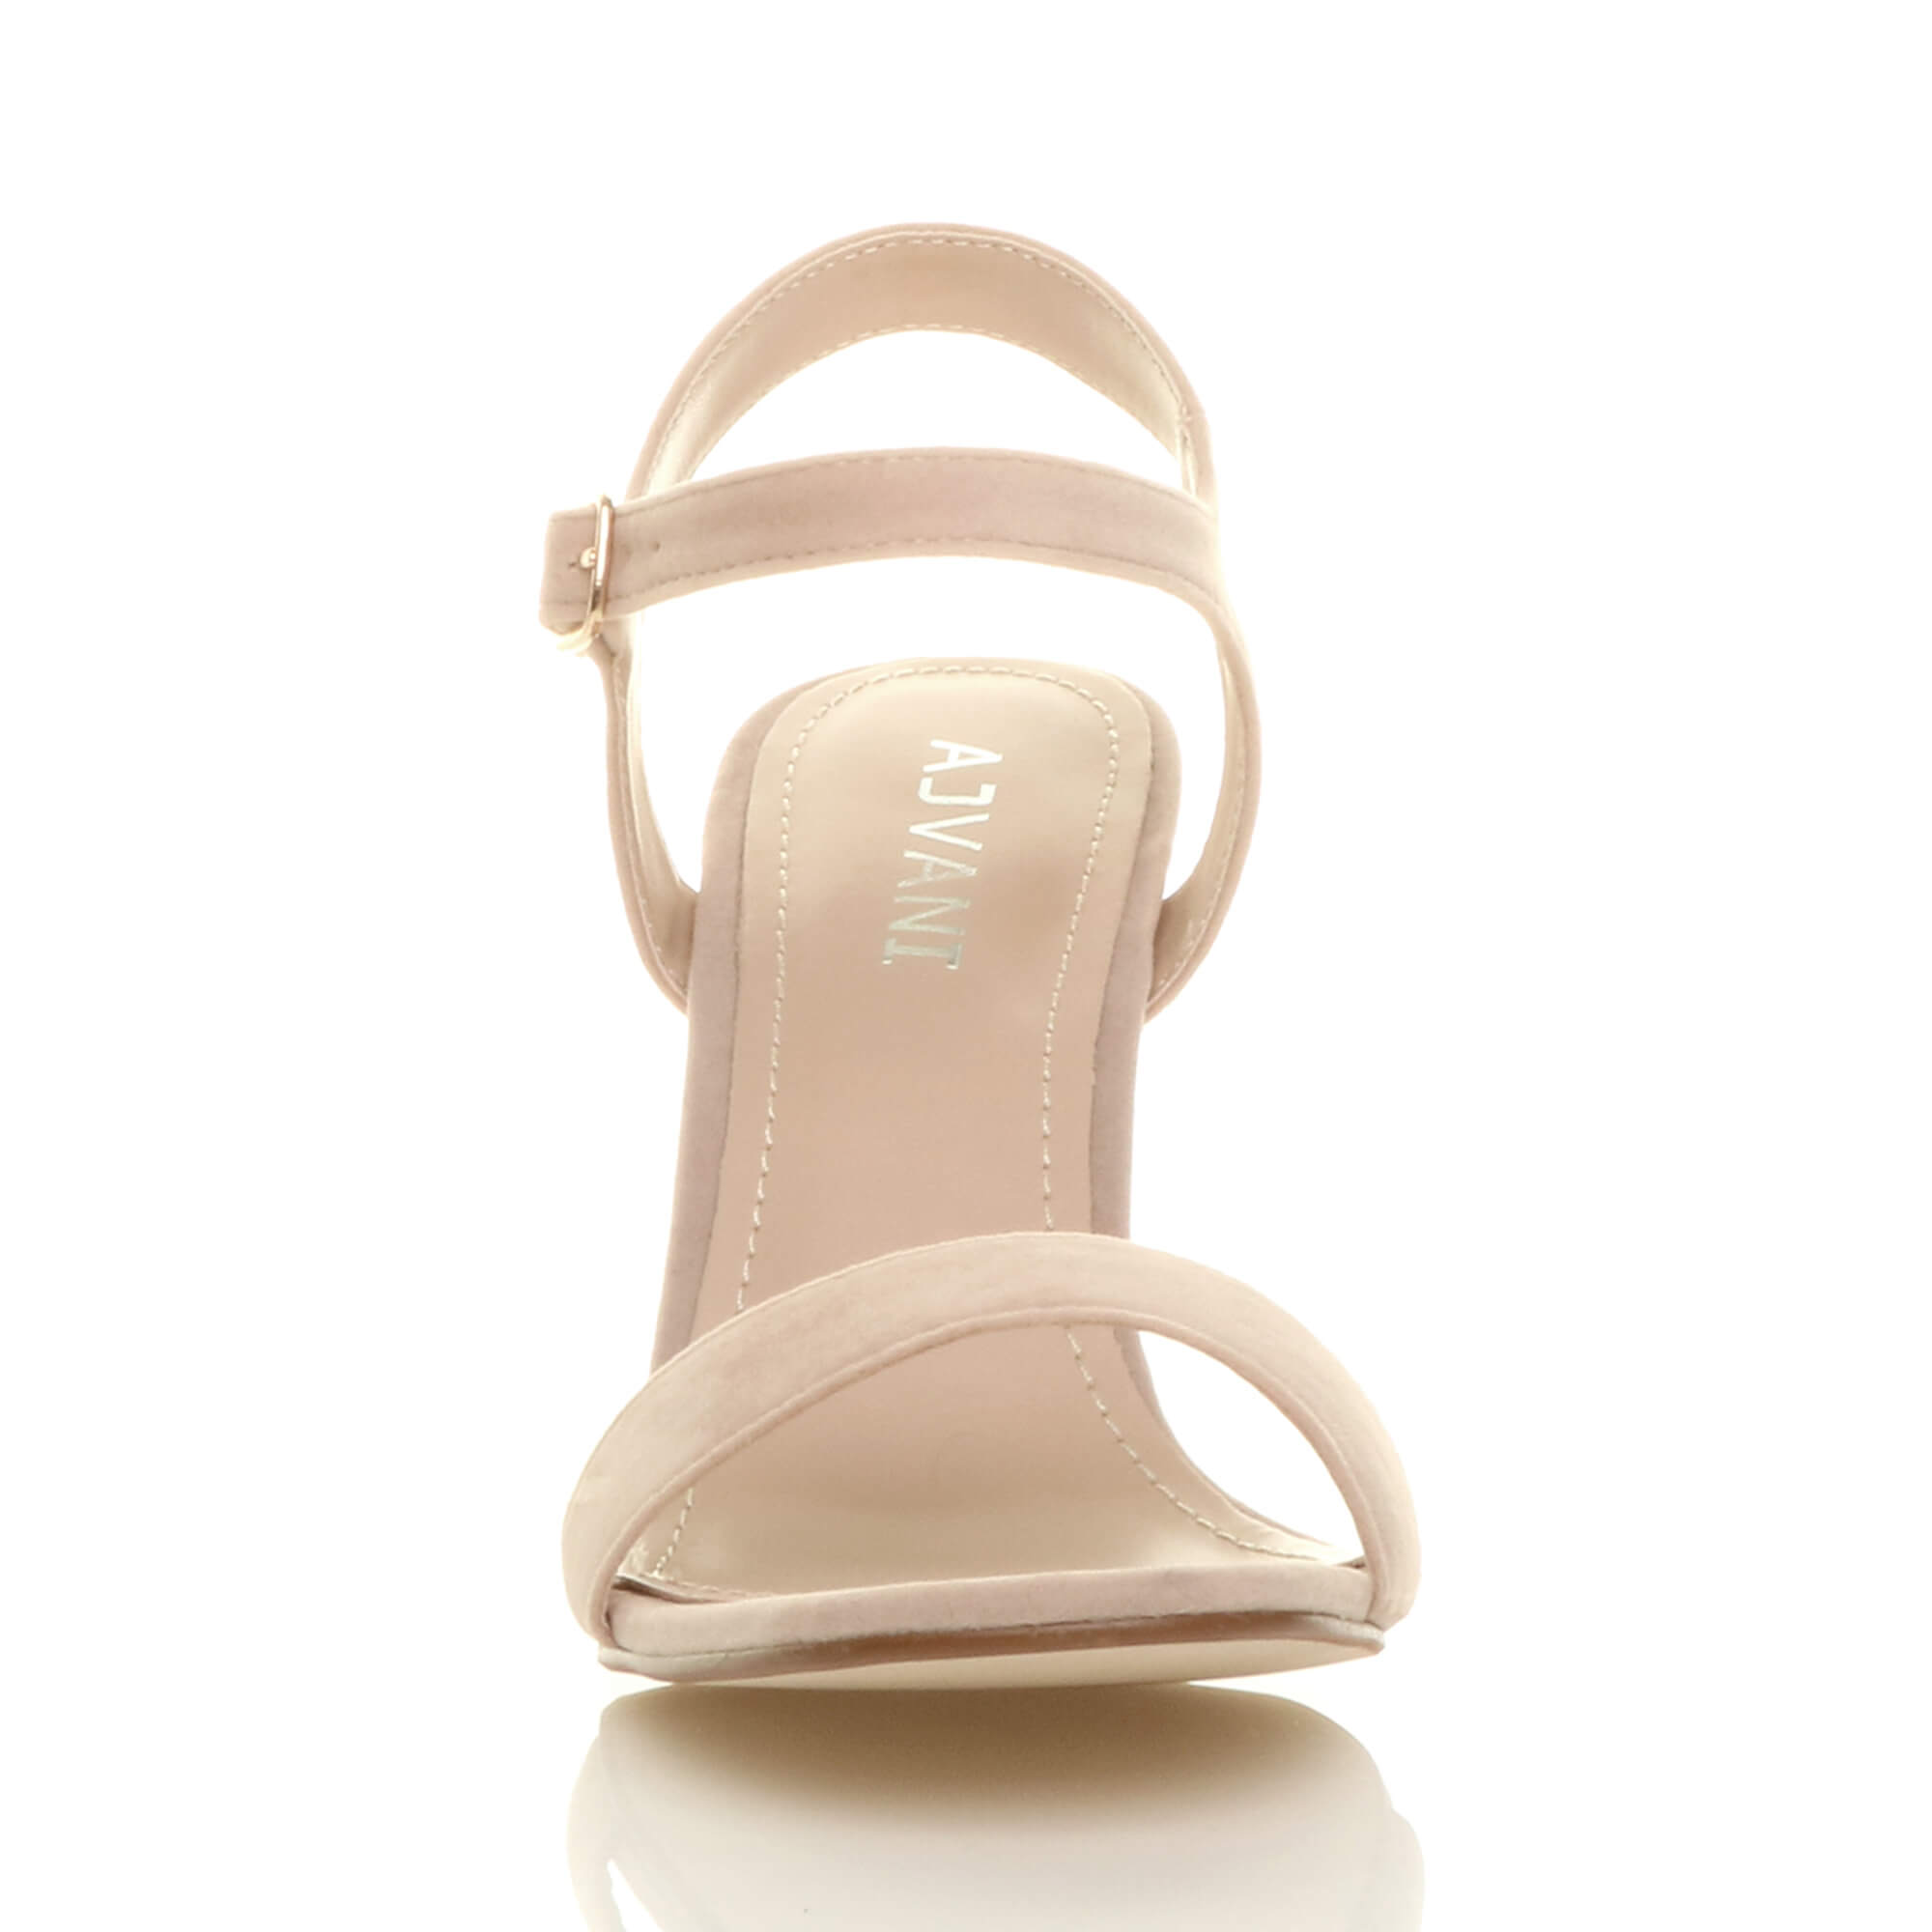 WOMENS-LADIES-HIGH-HEEL-BUCKLE-STRAPPY-BASIC-BARELY-THERE-SANDALS-SHOES-SIZE thumbnail 104